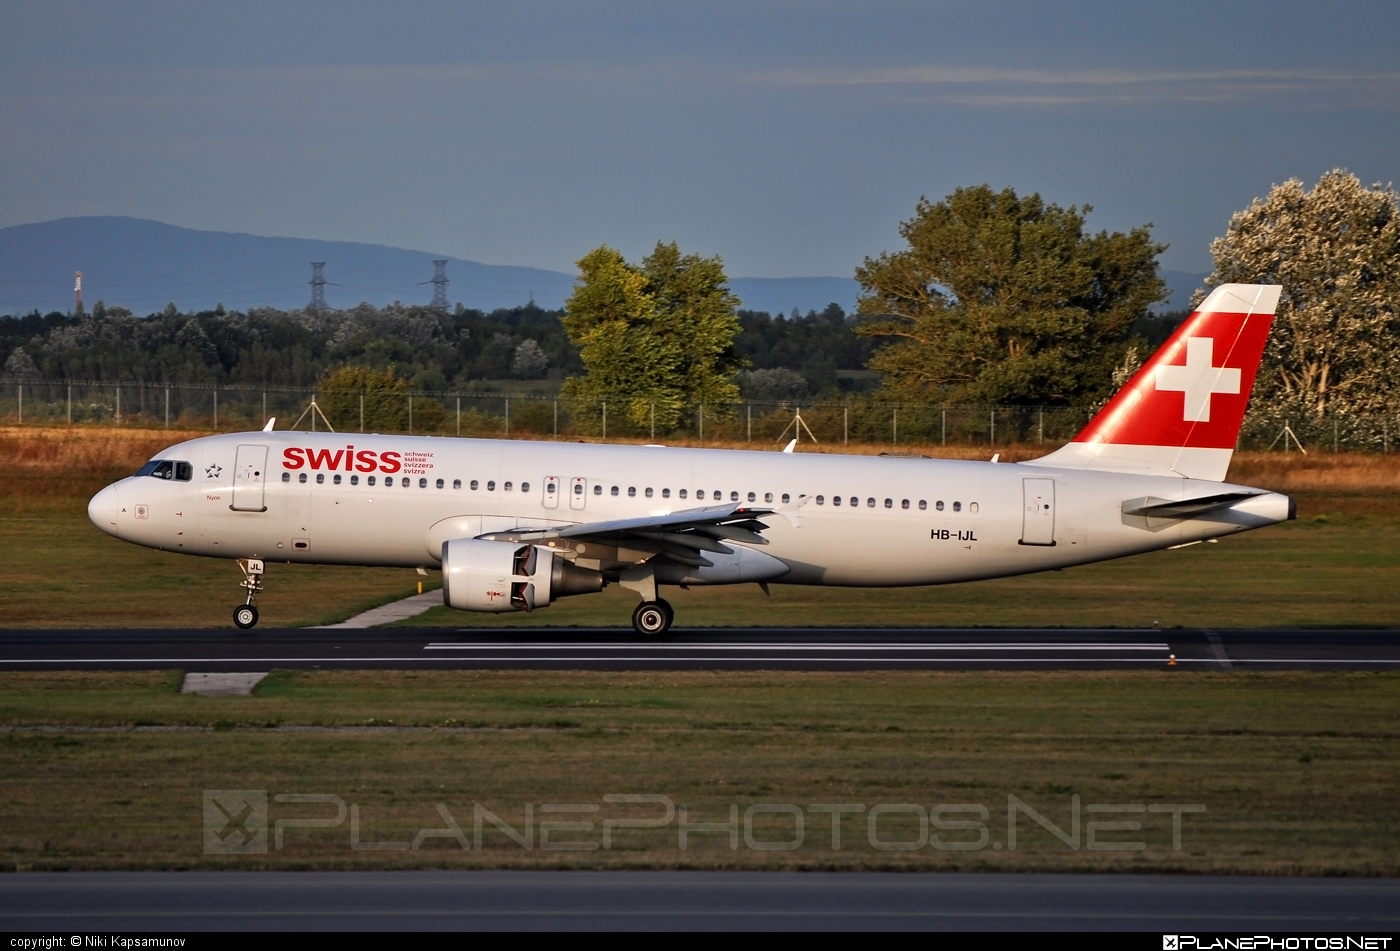 Airbus A320-214 - HB-IJL operated by Swiss International Air Lines #a320 #a320family #airbus #airbus320 #swiss #swissairlines